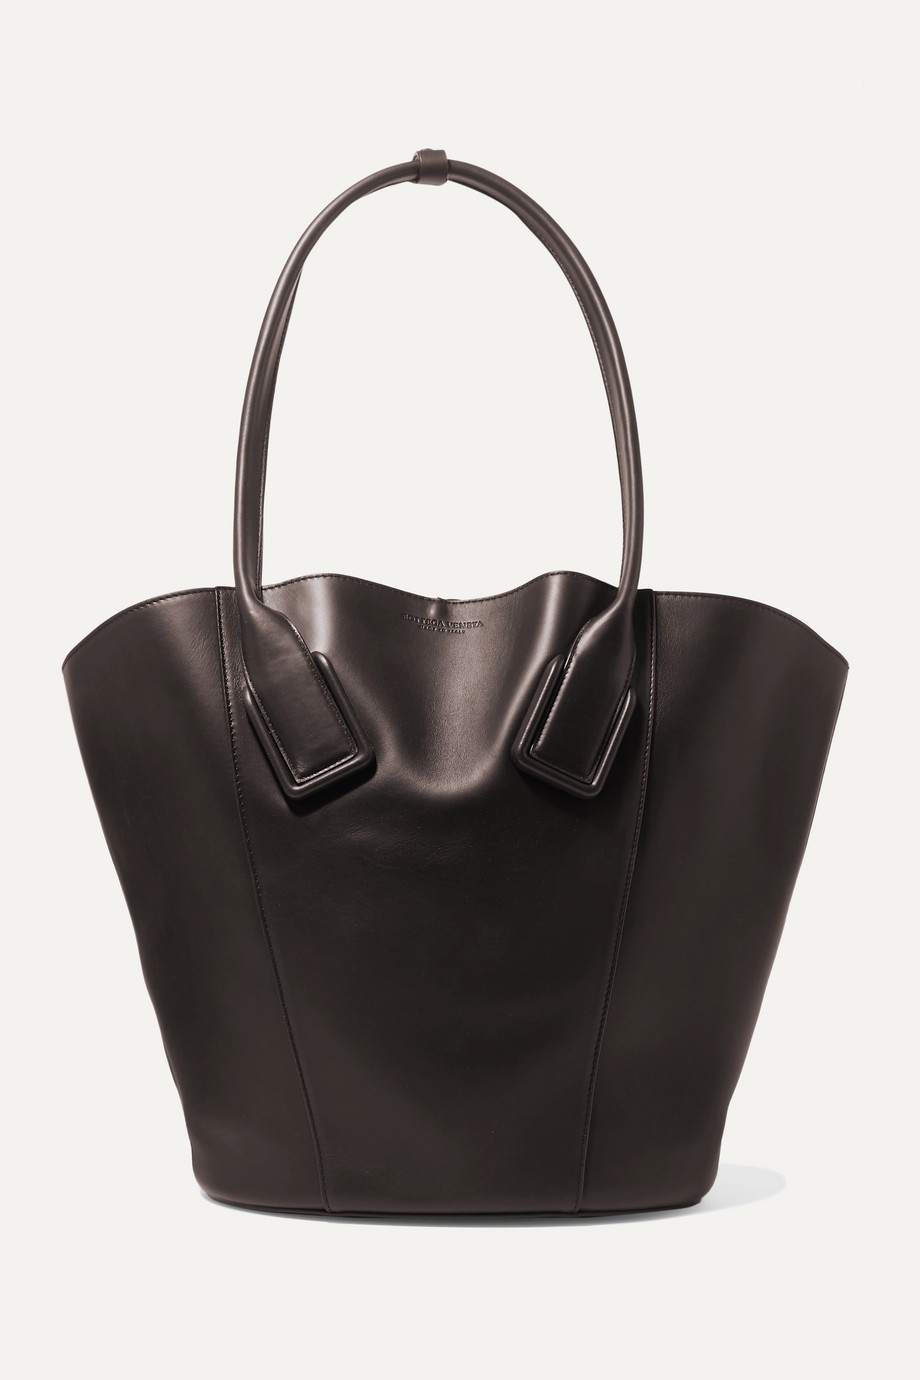 BOTTEGA VENETA Basket leather tote